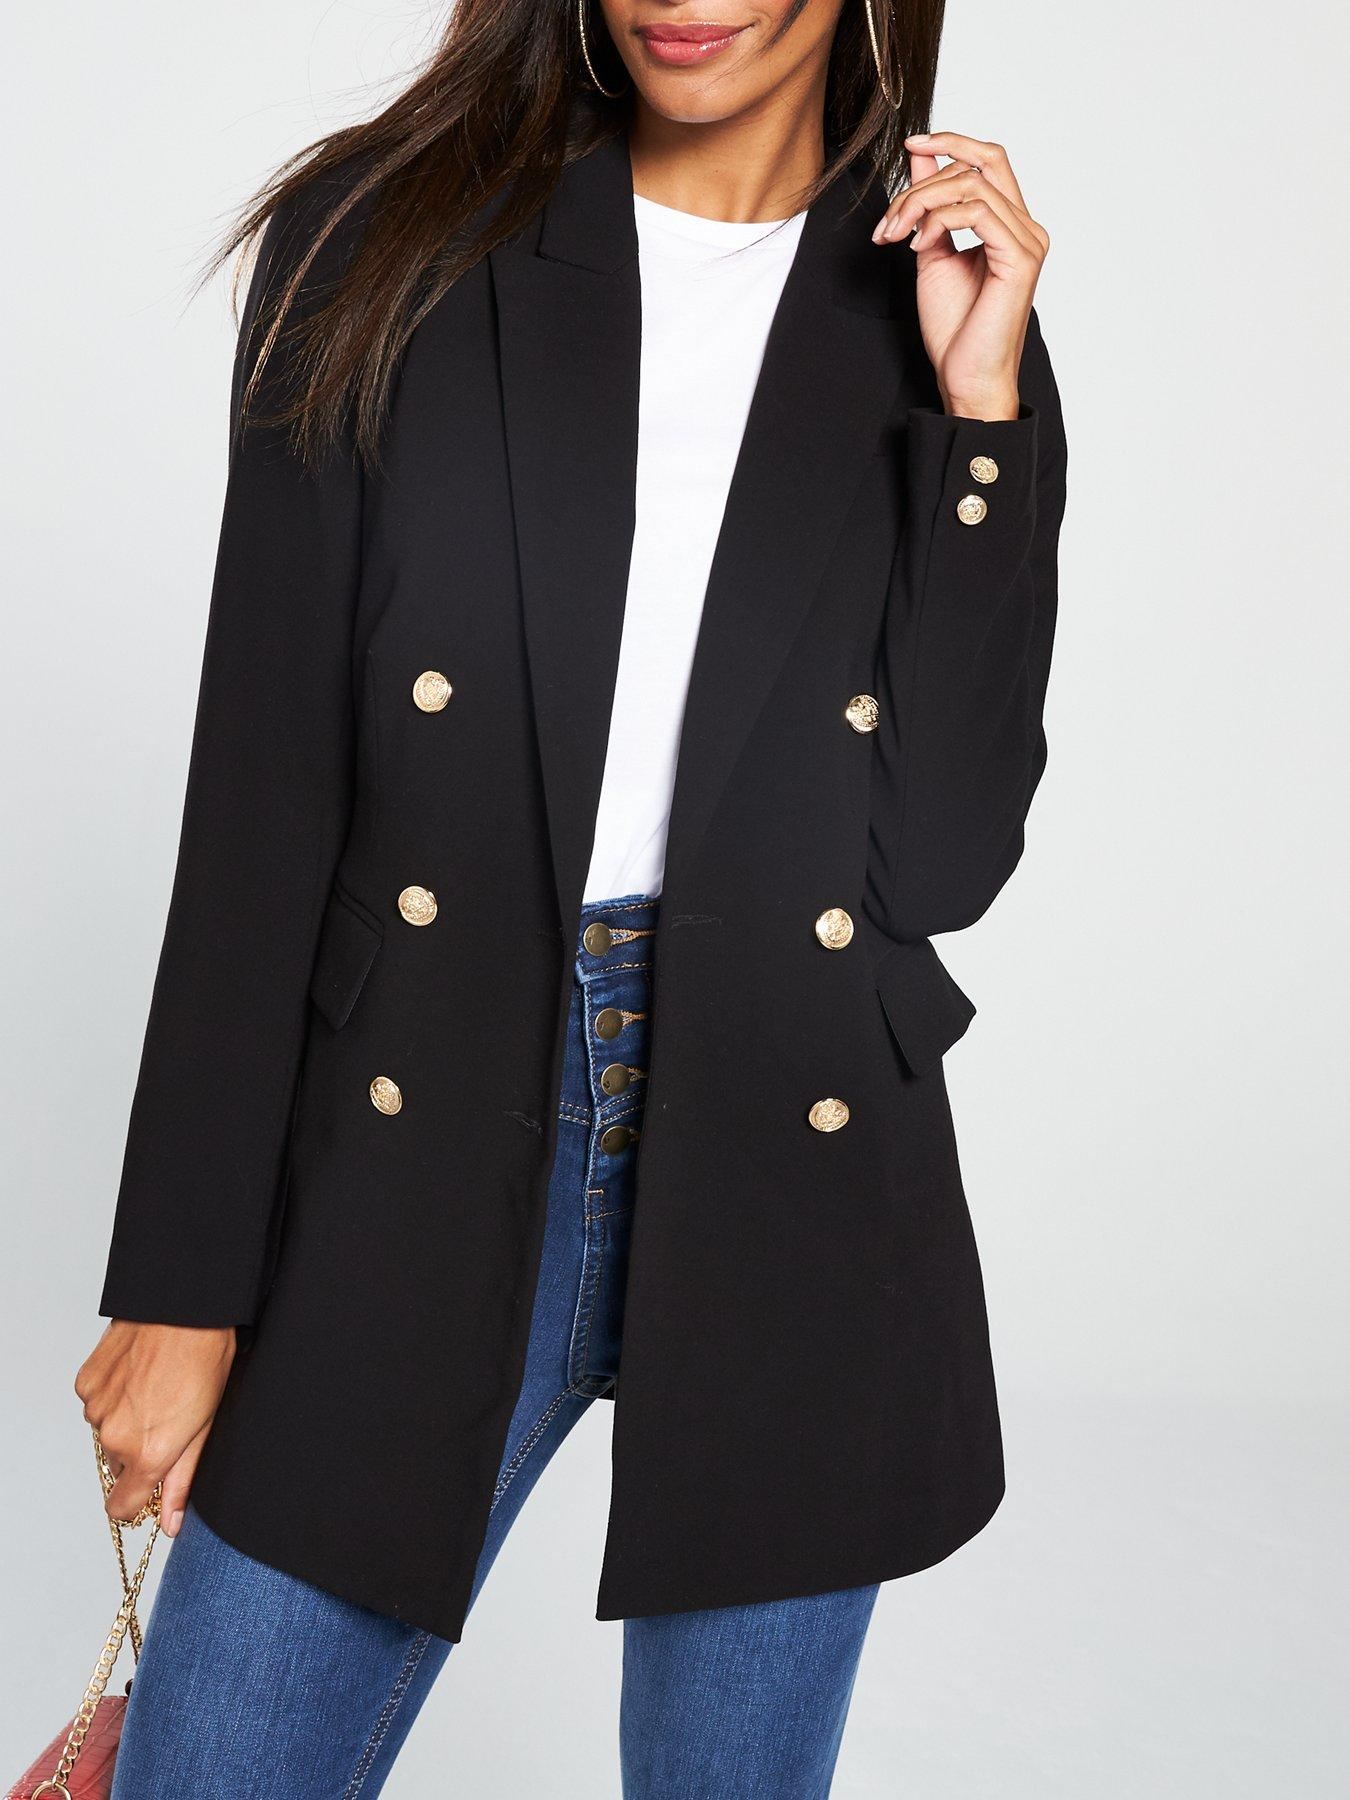 Michelle Keegan Black Double Breasted Military Blazer Jacket Coat 10 to 18 New